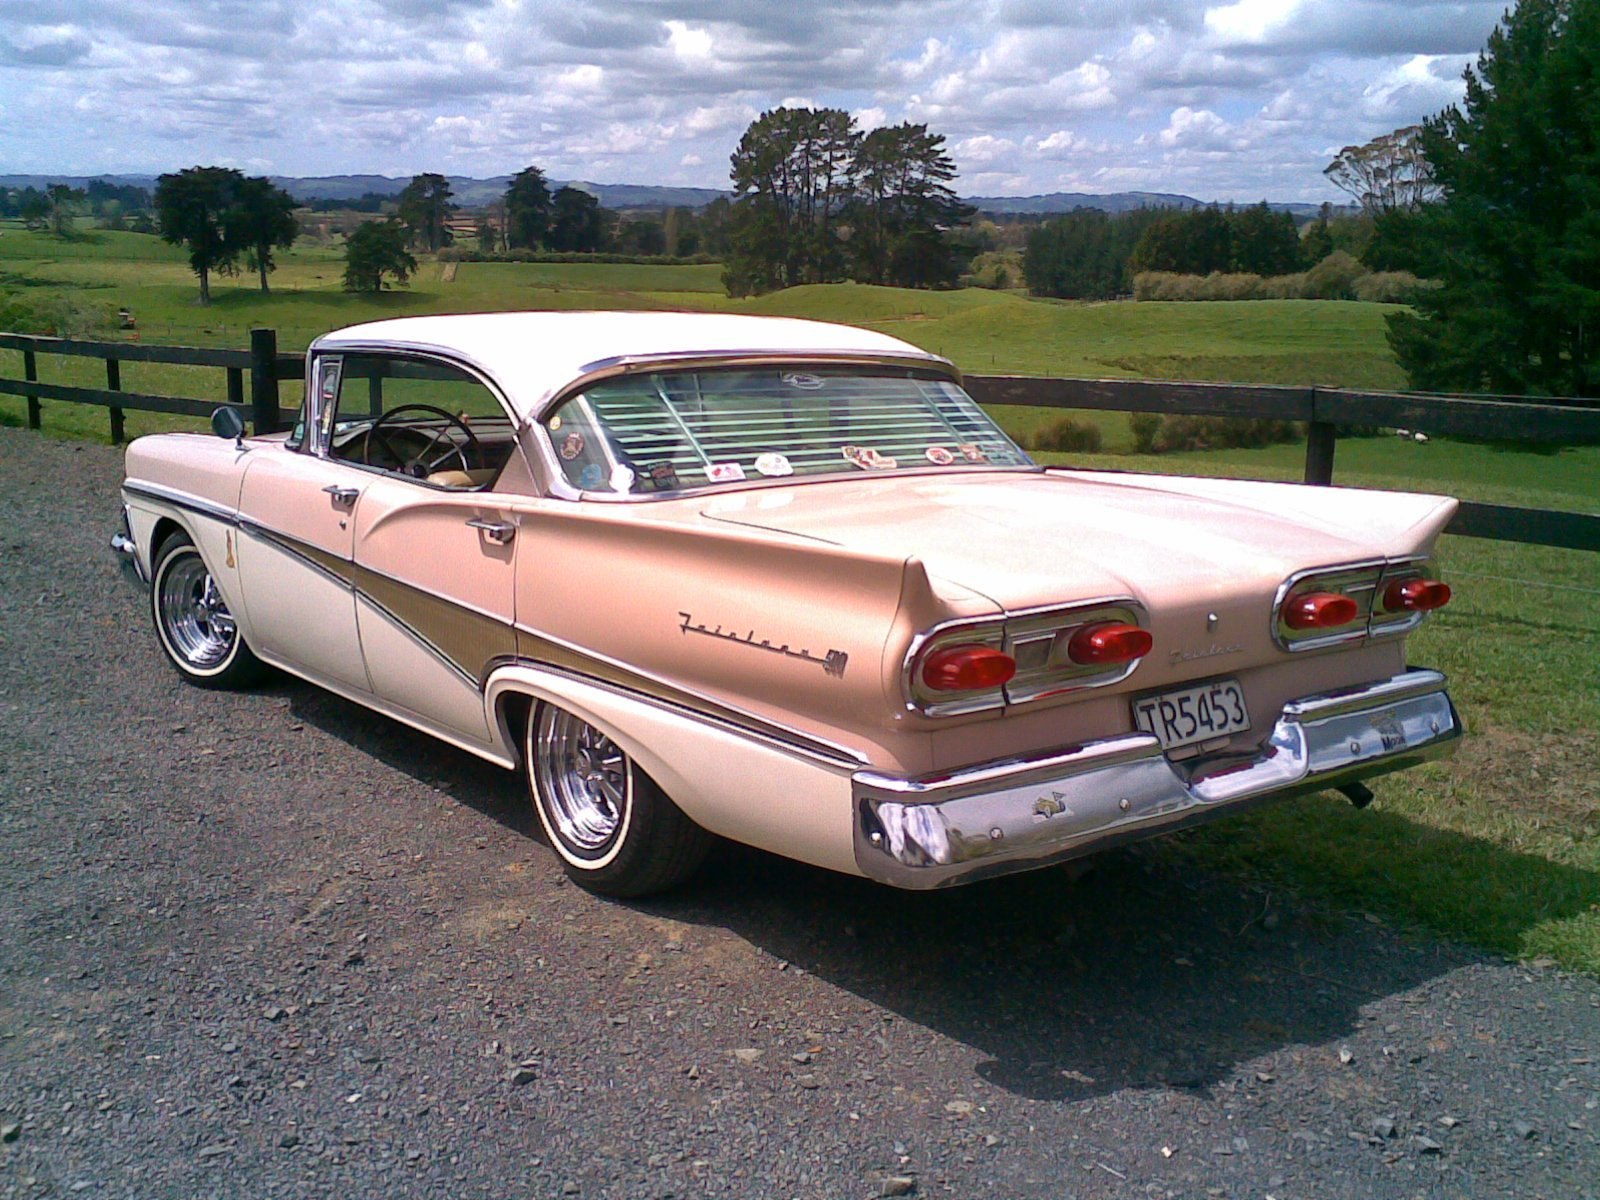 Cruisin58's 1958 Ford Fairlane